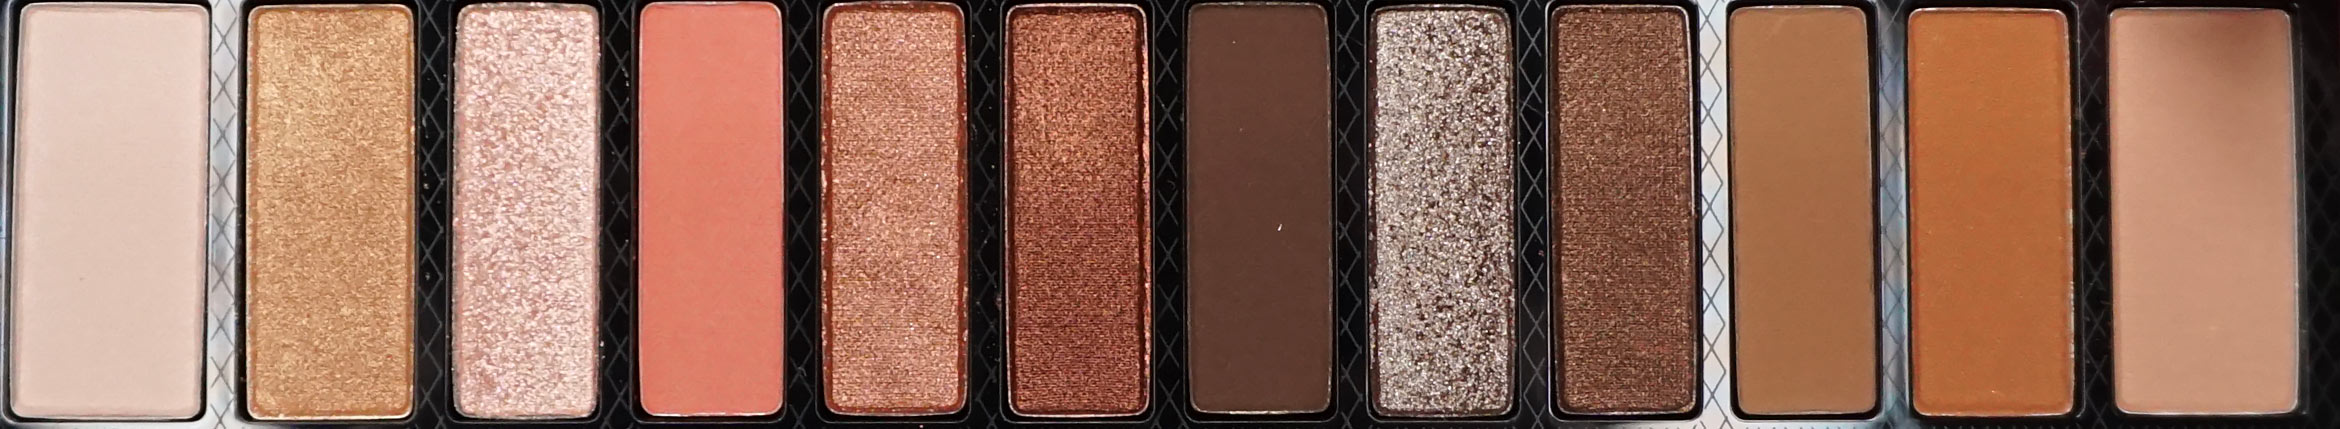 Urban-Decay-Naked-Reloaded-review-4